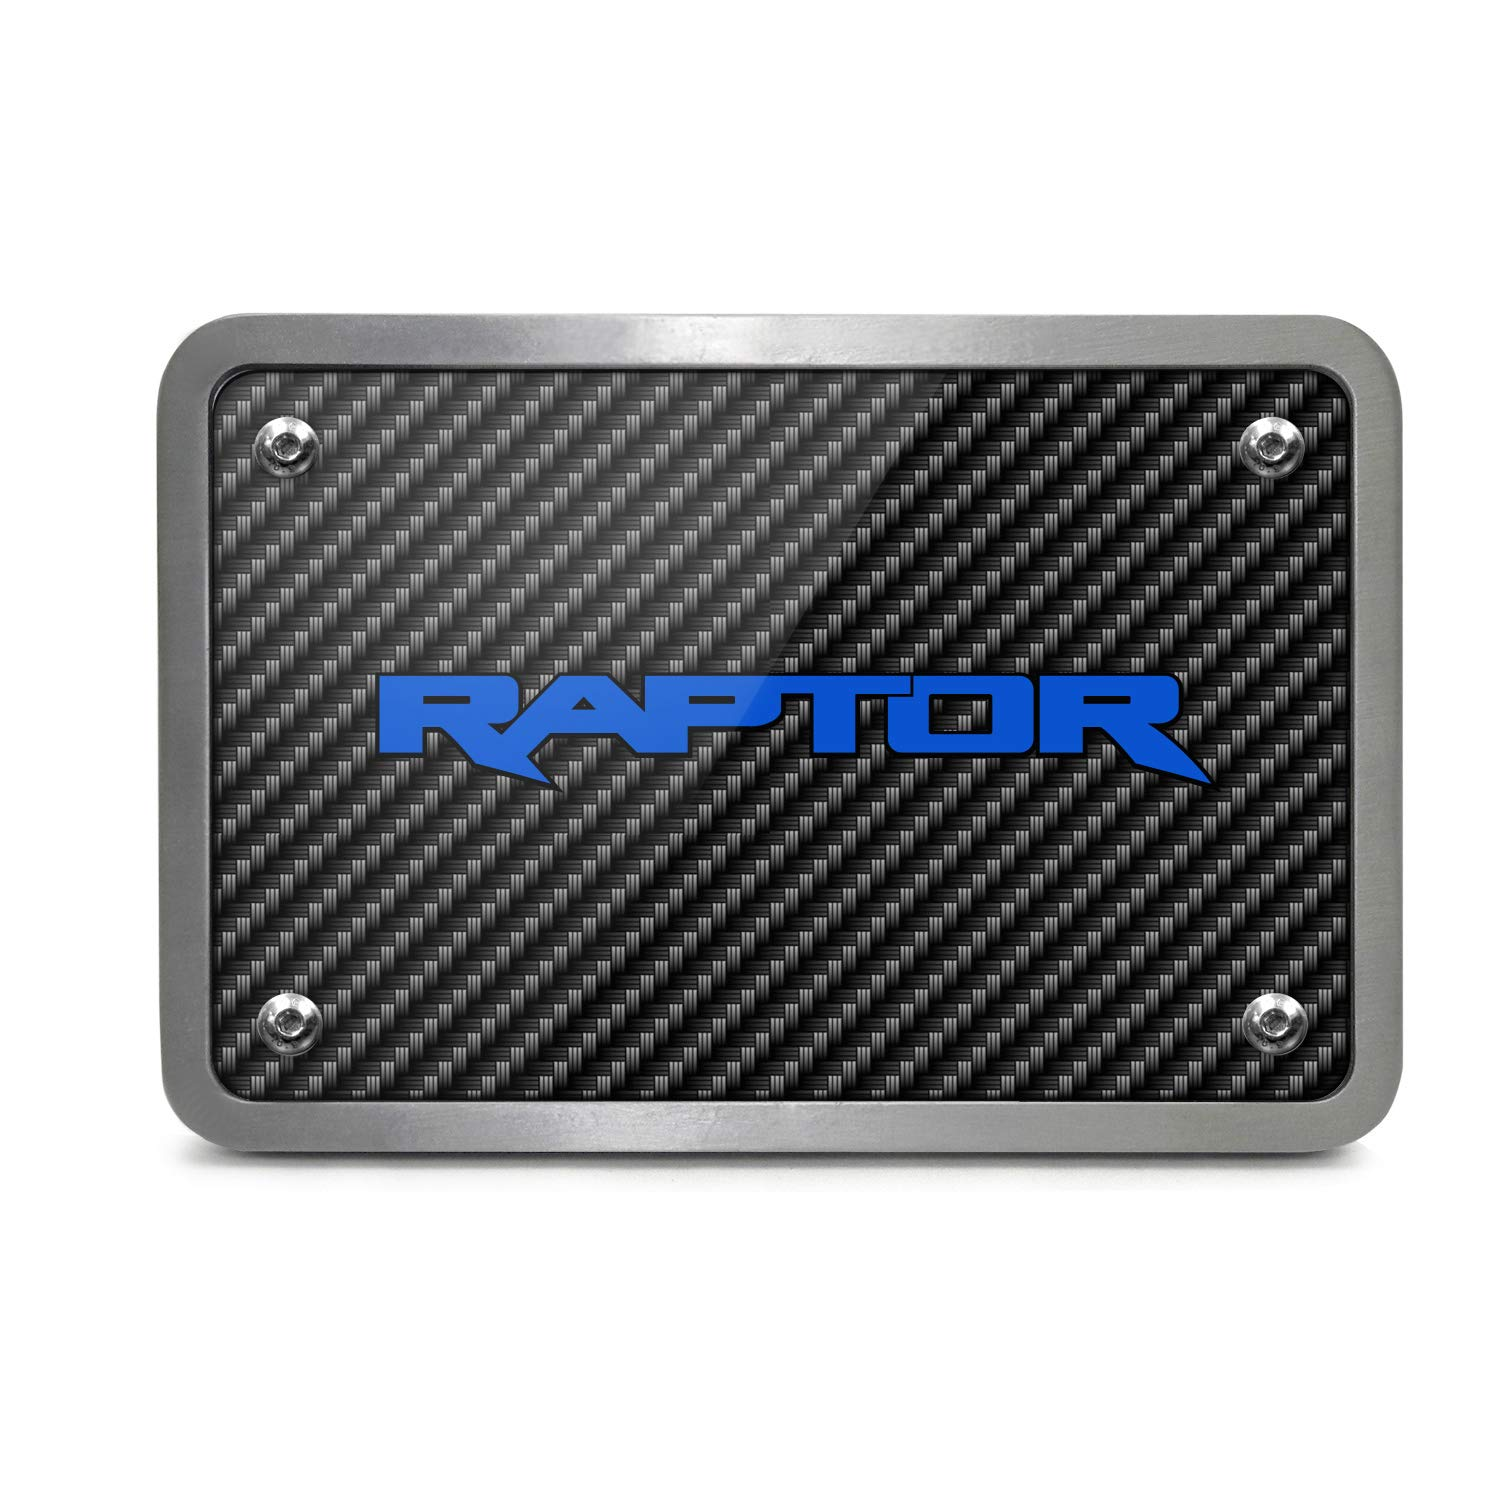 iPick Image Ford F150 Raptor 2017 to 2018 in Blue Black Carbon Fiber Texture Plate Billet Aluminum 2 inch Tow Hitch Cover, Made in USA by iPick Image